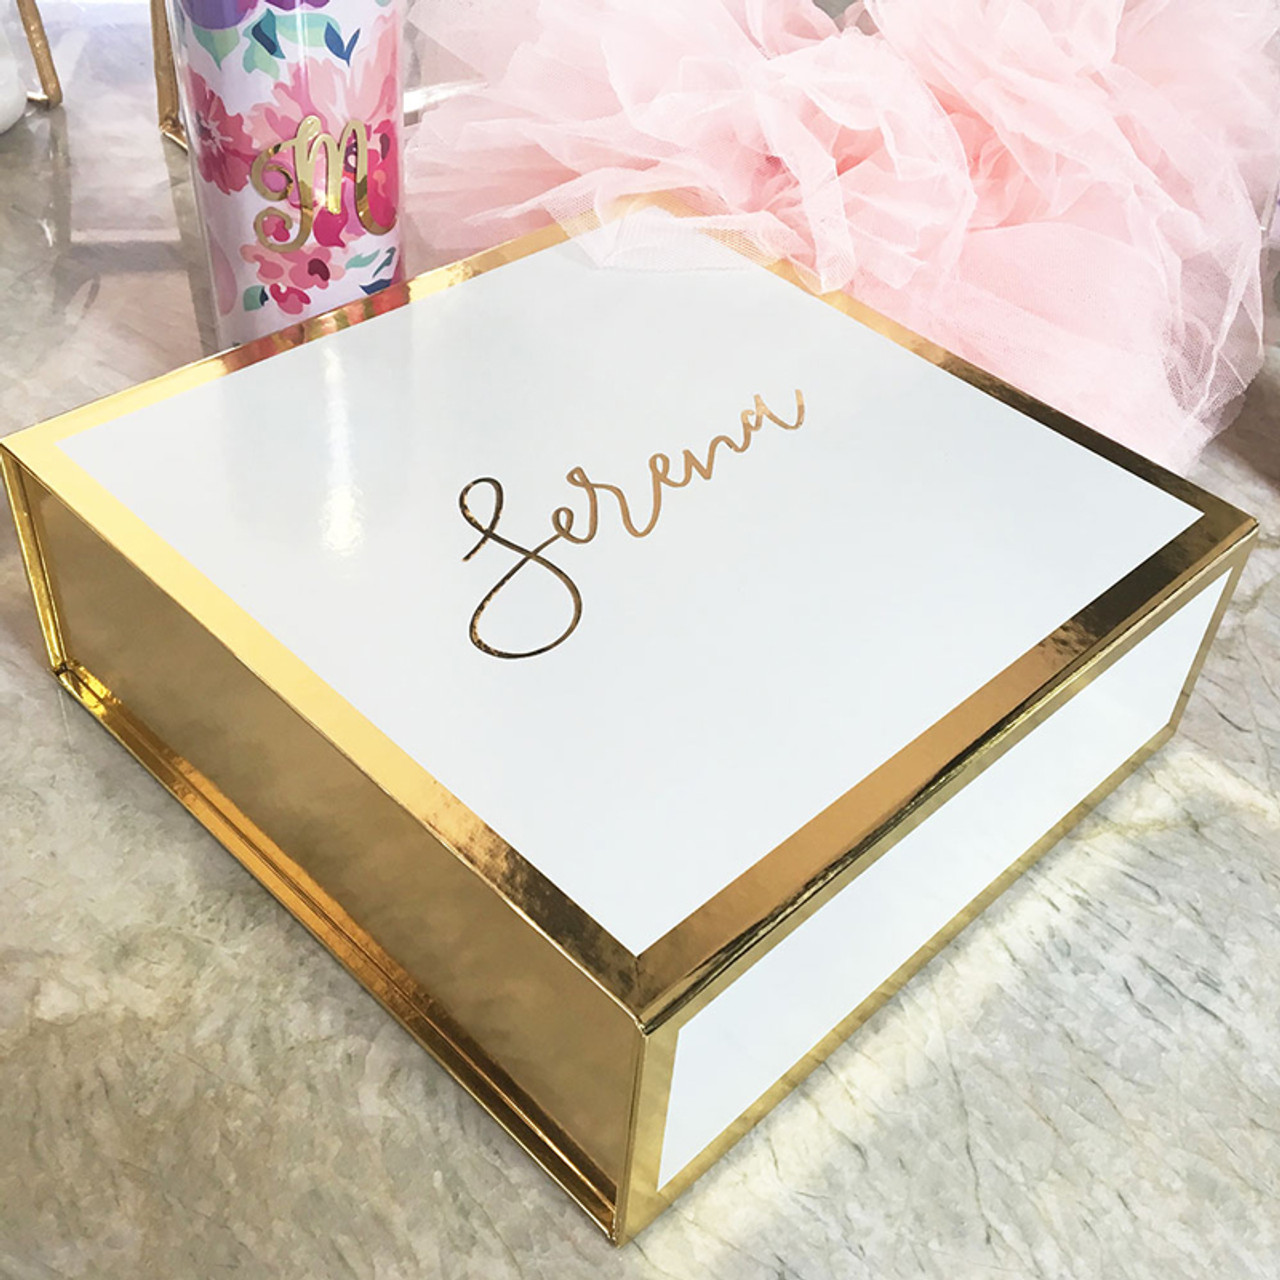 Monogram Gift Box White Gold Perfect For Will You Be My Bridesmaid Gift And Wedding Present